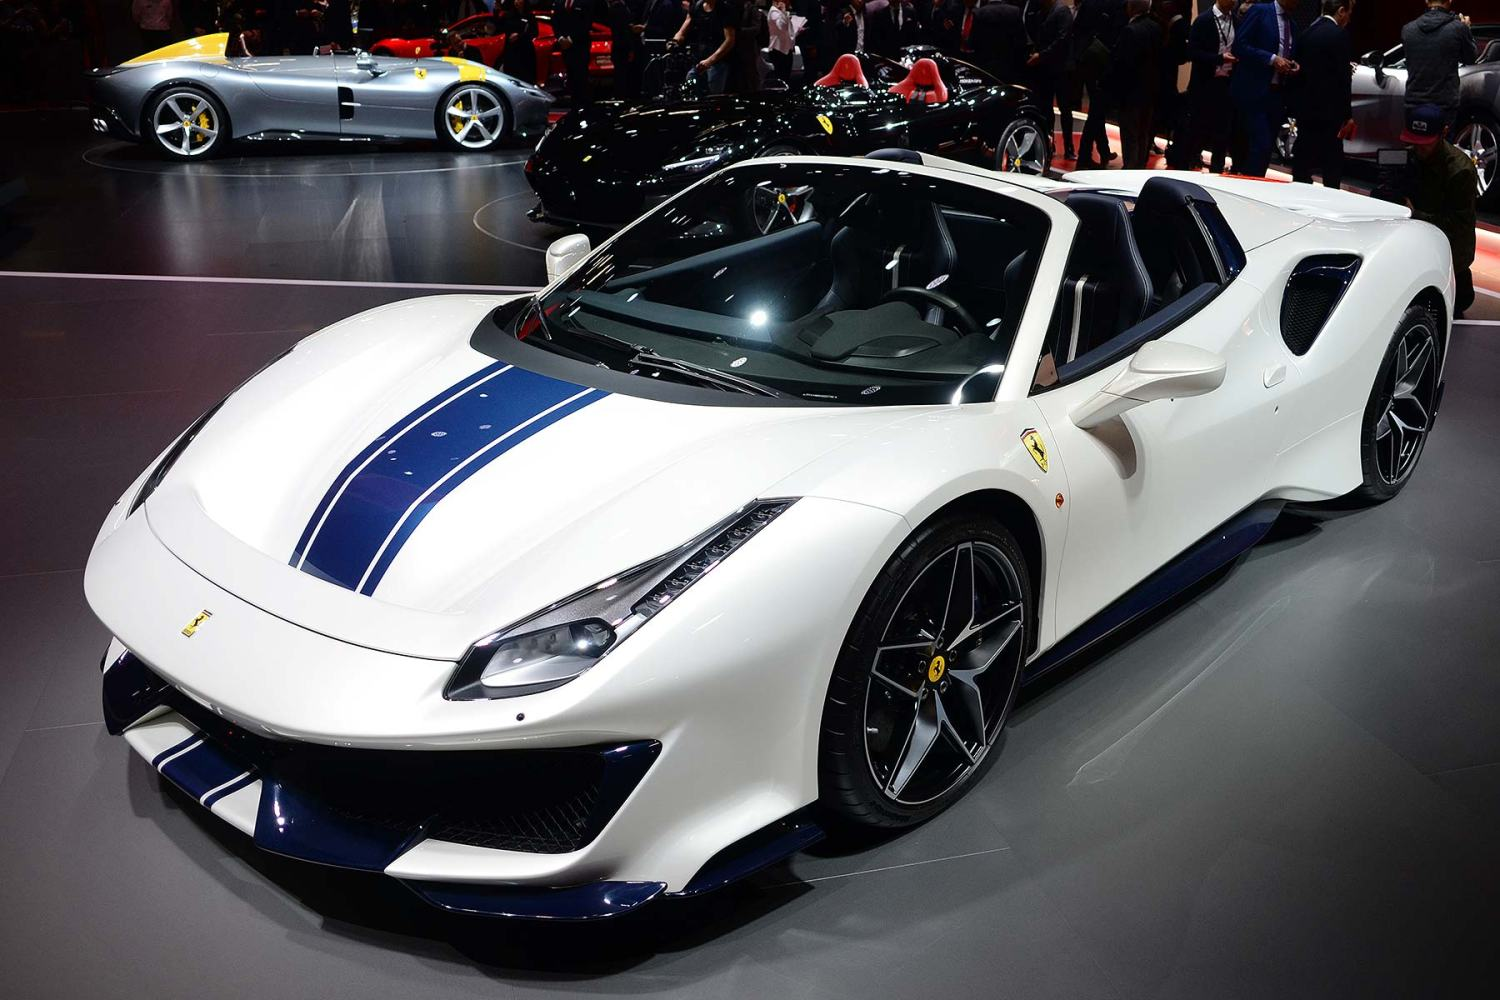 Ferrari 488 Pista Spider in Paris